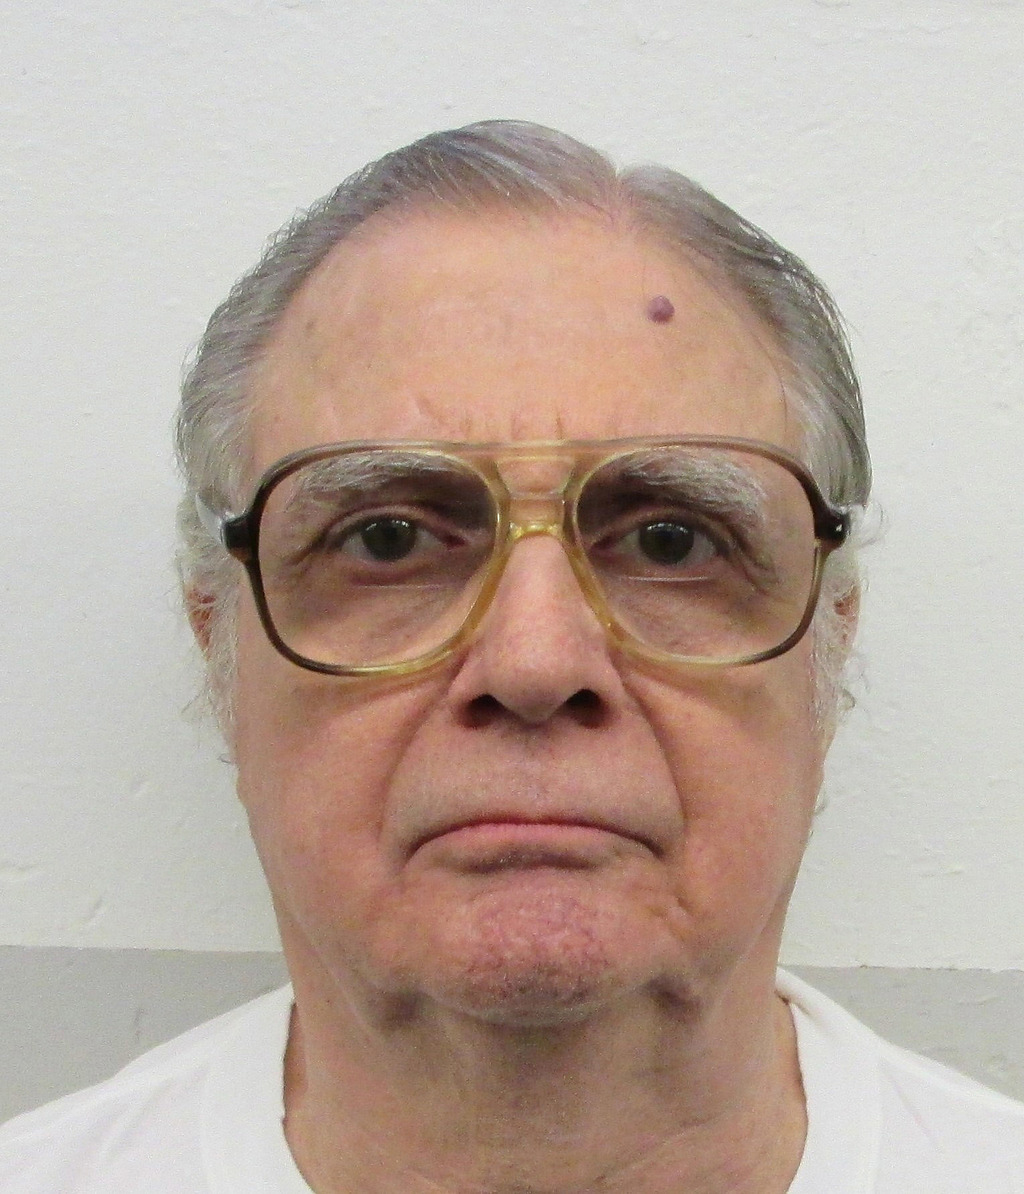 Alabama death row inmate Thomas Arthur fights for 8th reprieve of execution